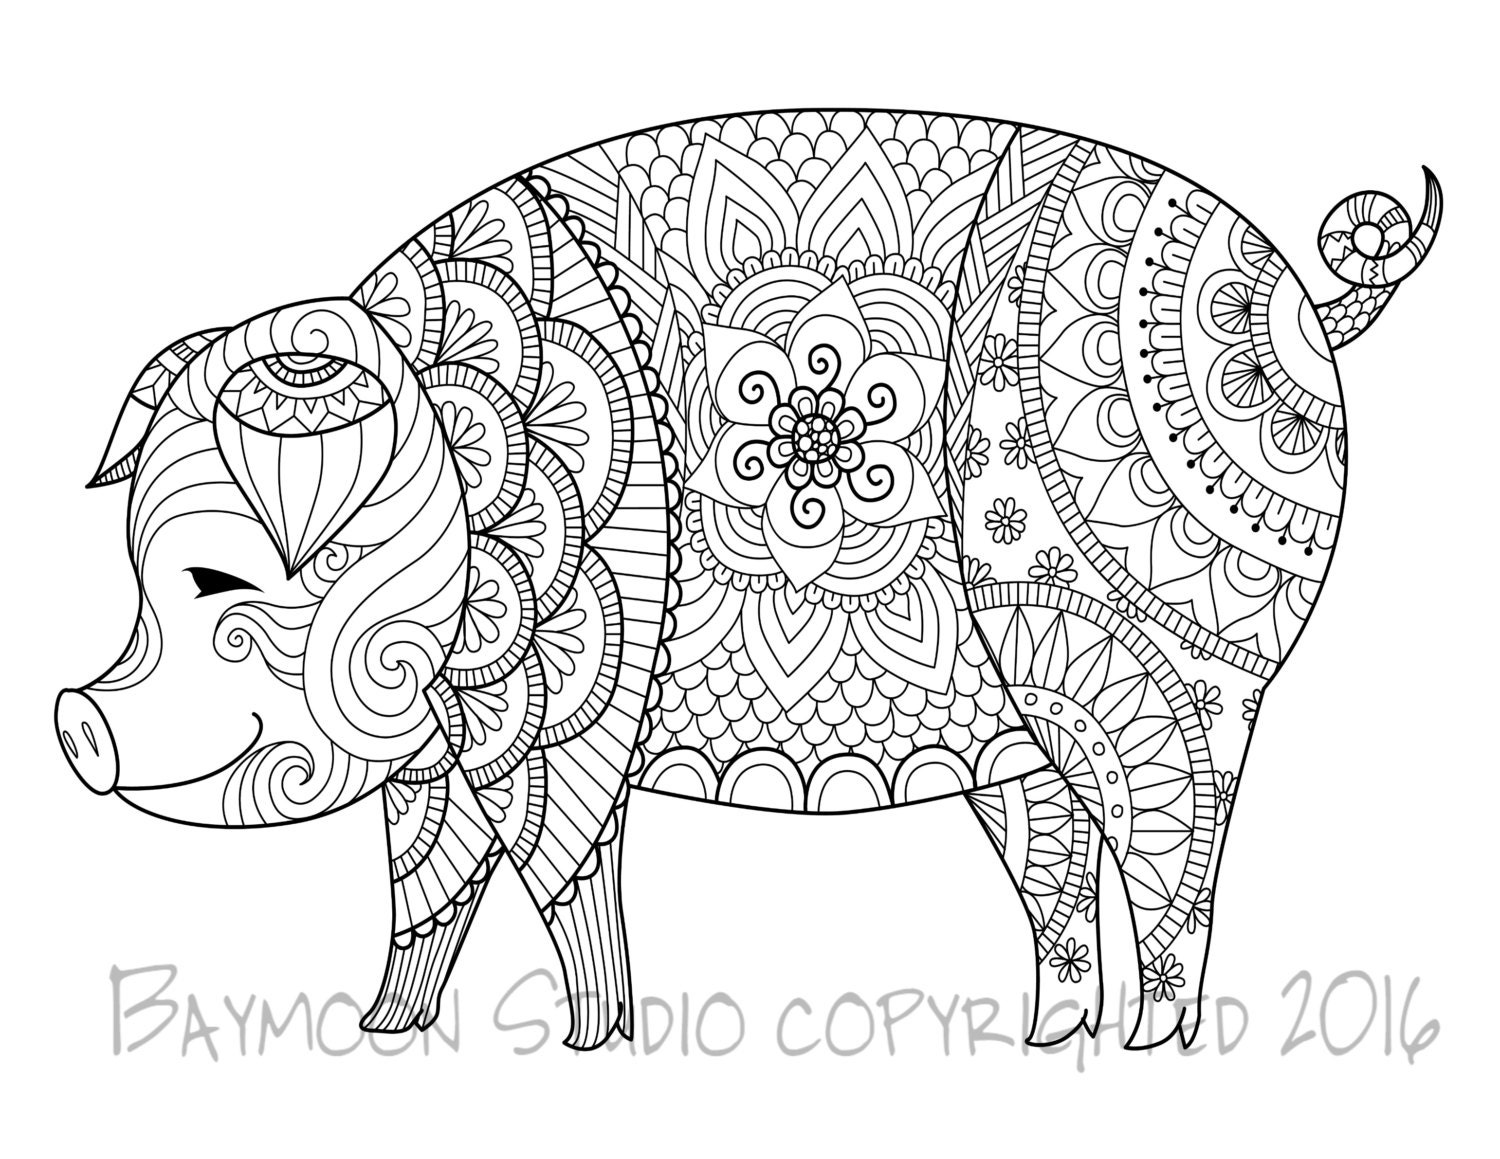 This is an image of Slobbery pig coloring pages for adults